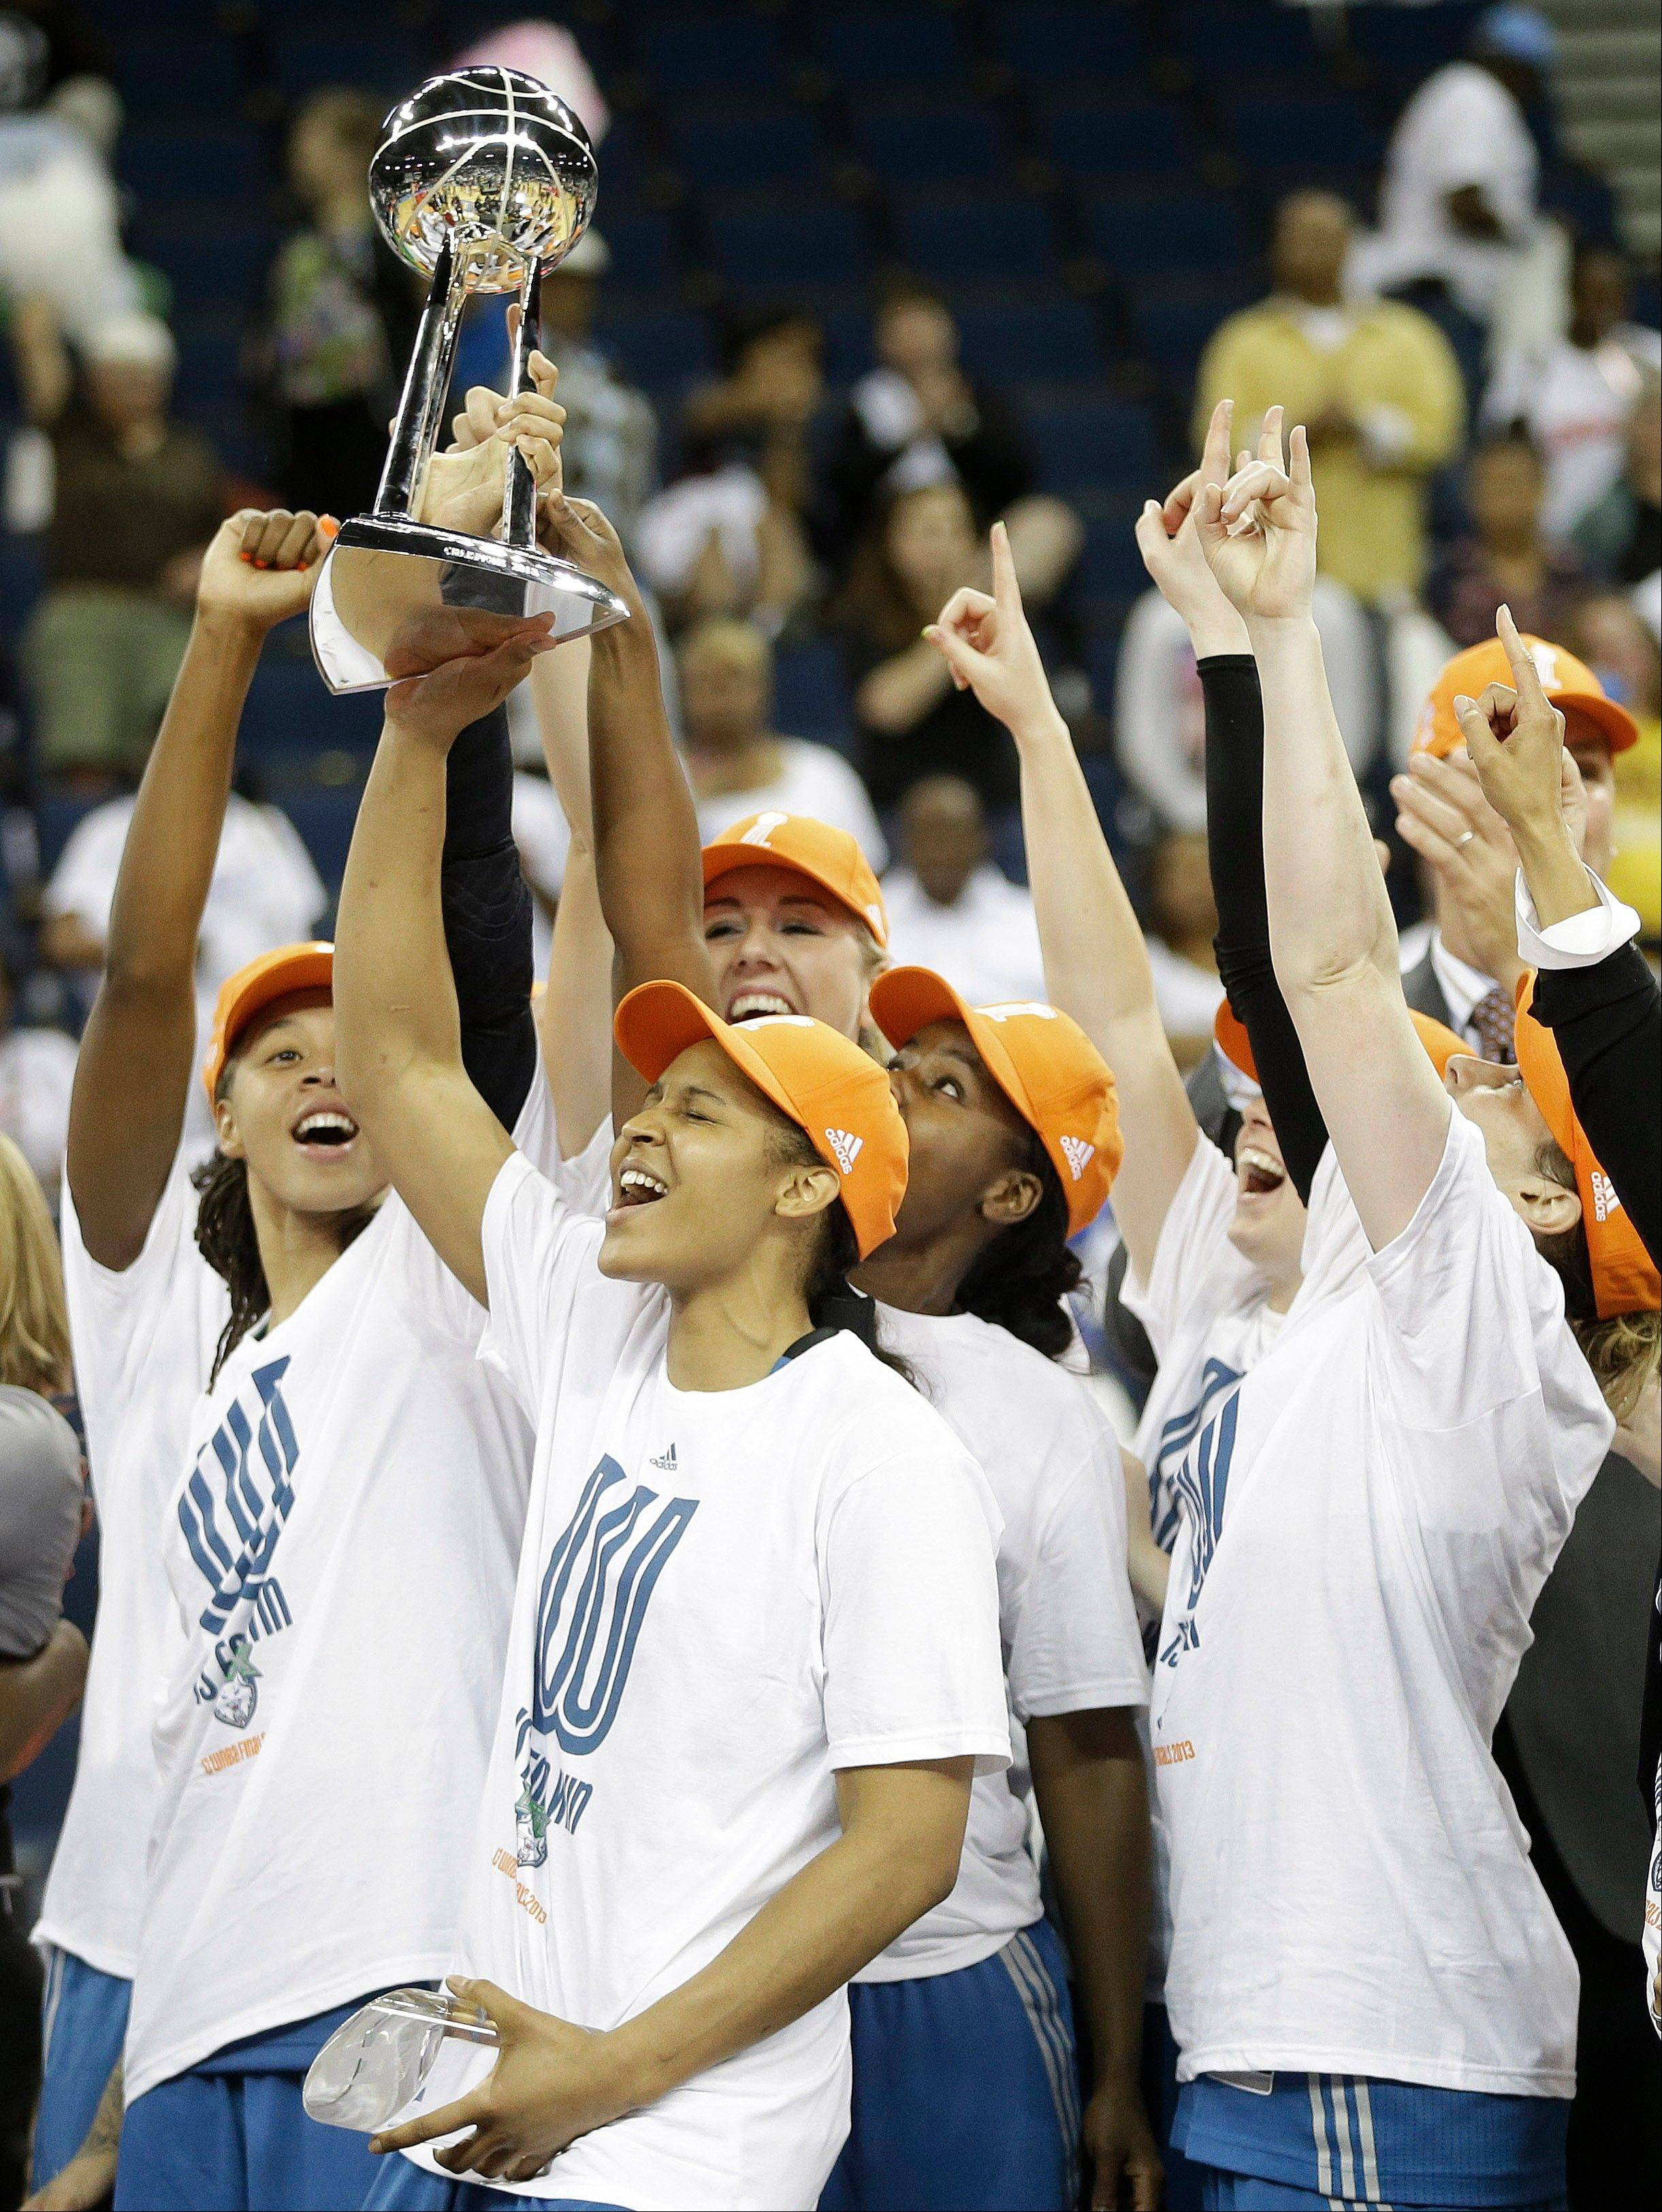 Minnesota Lynx' Maya Moore, second from left, holds the championship trophy with teammates after sweeping the Atlanta Dream in the WNBA Finals.